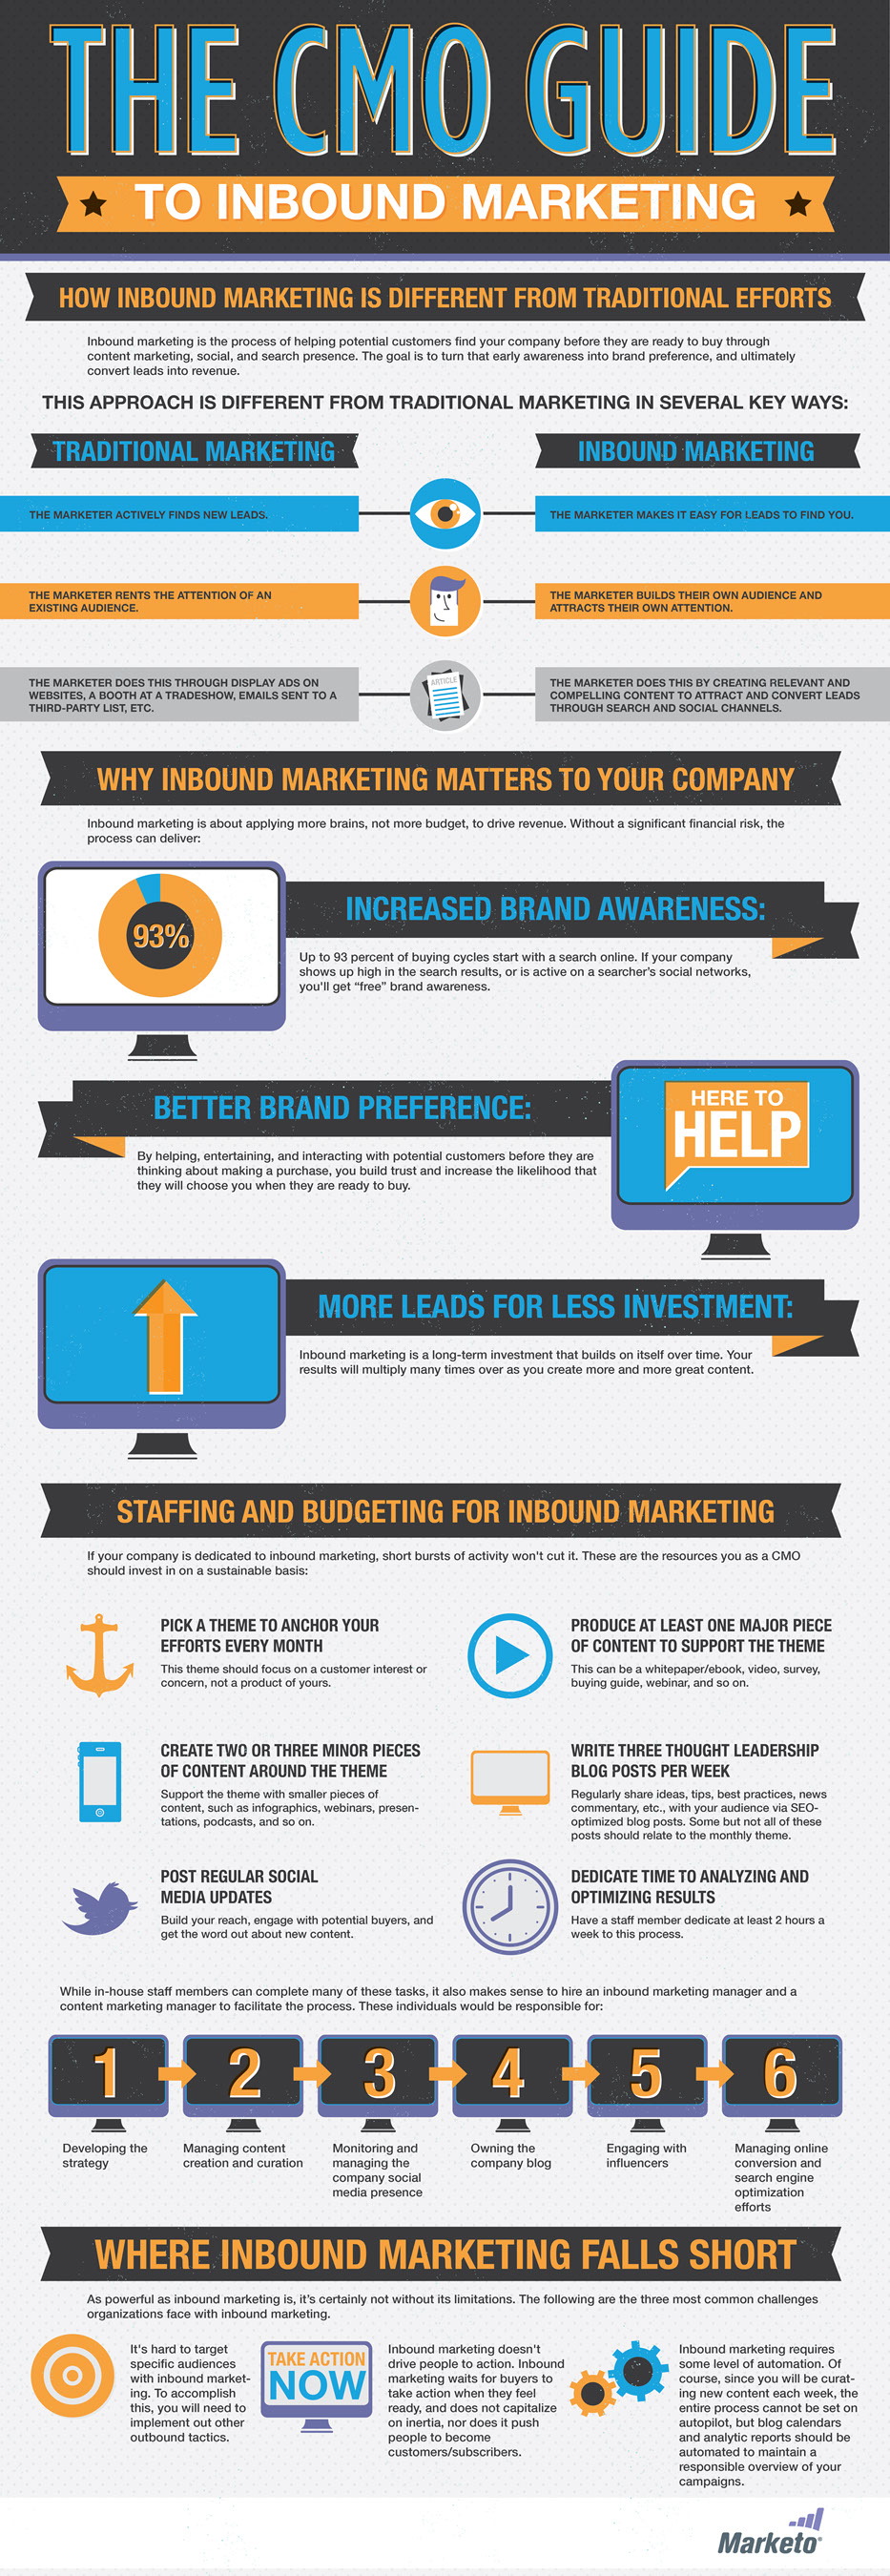 Cmo-Guide-To-Inbound-Marketing-infographic